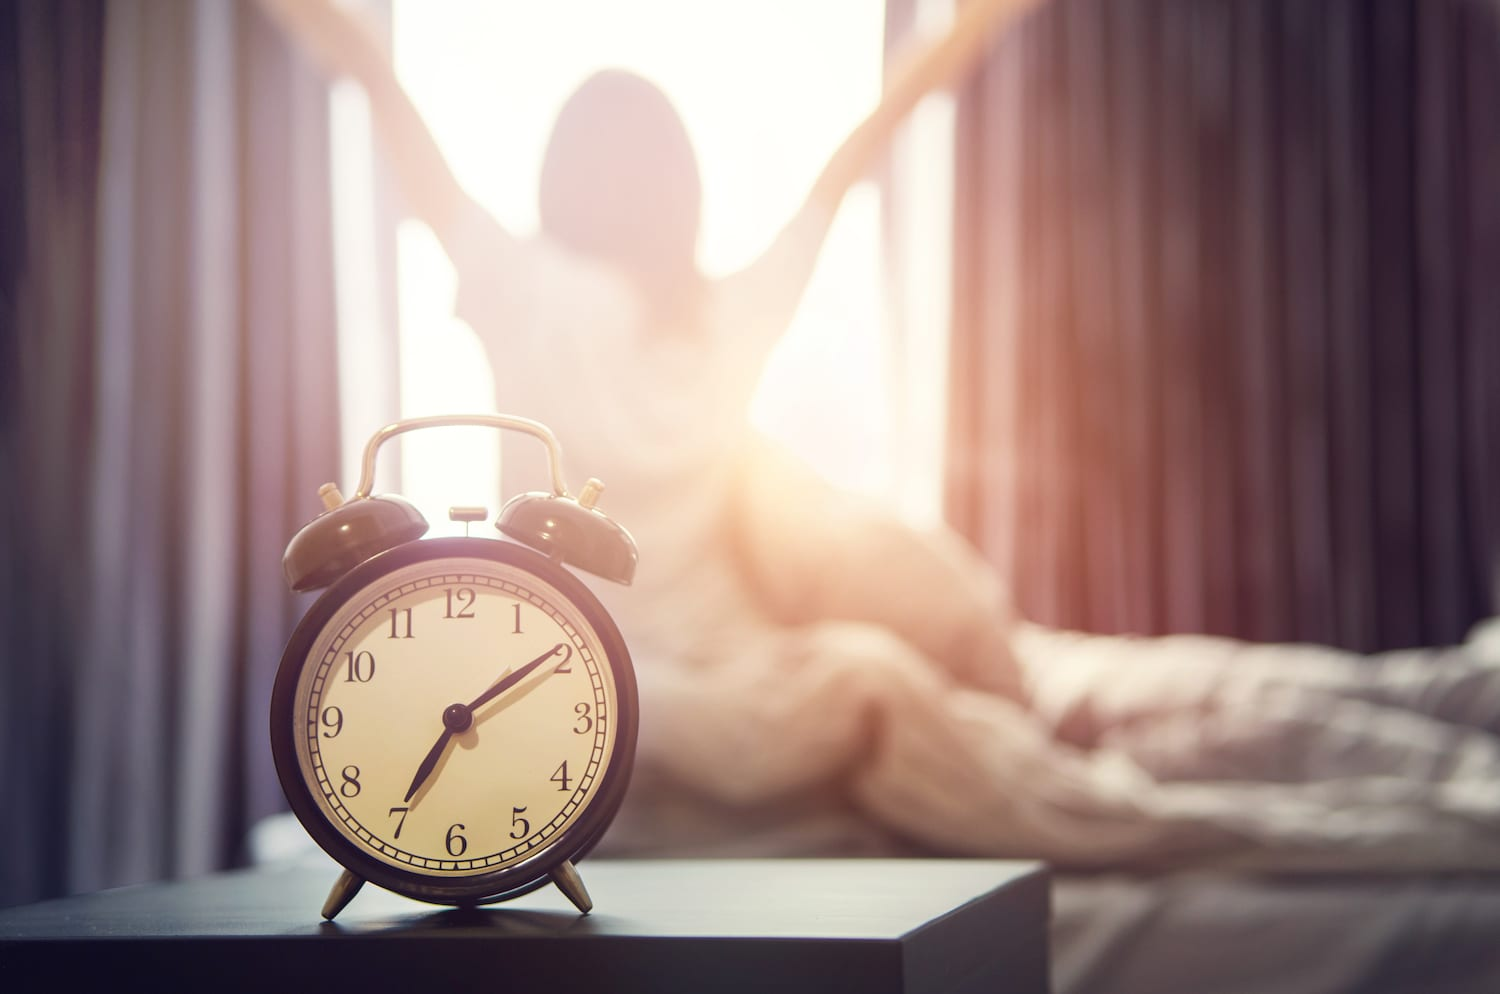 Close up of alarm clock with woman stretching in background during a sunny morning